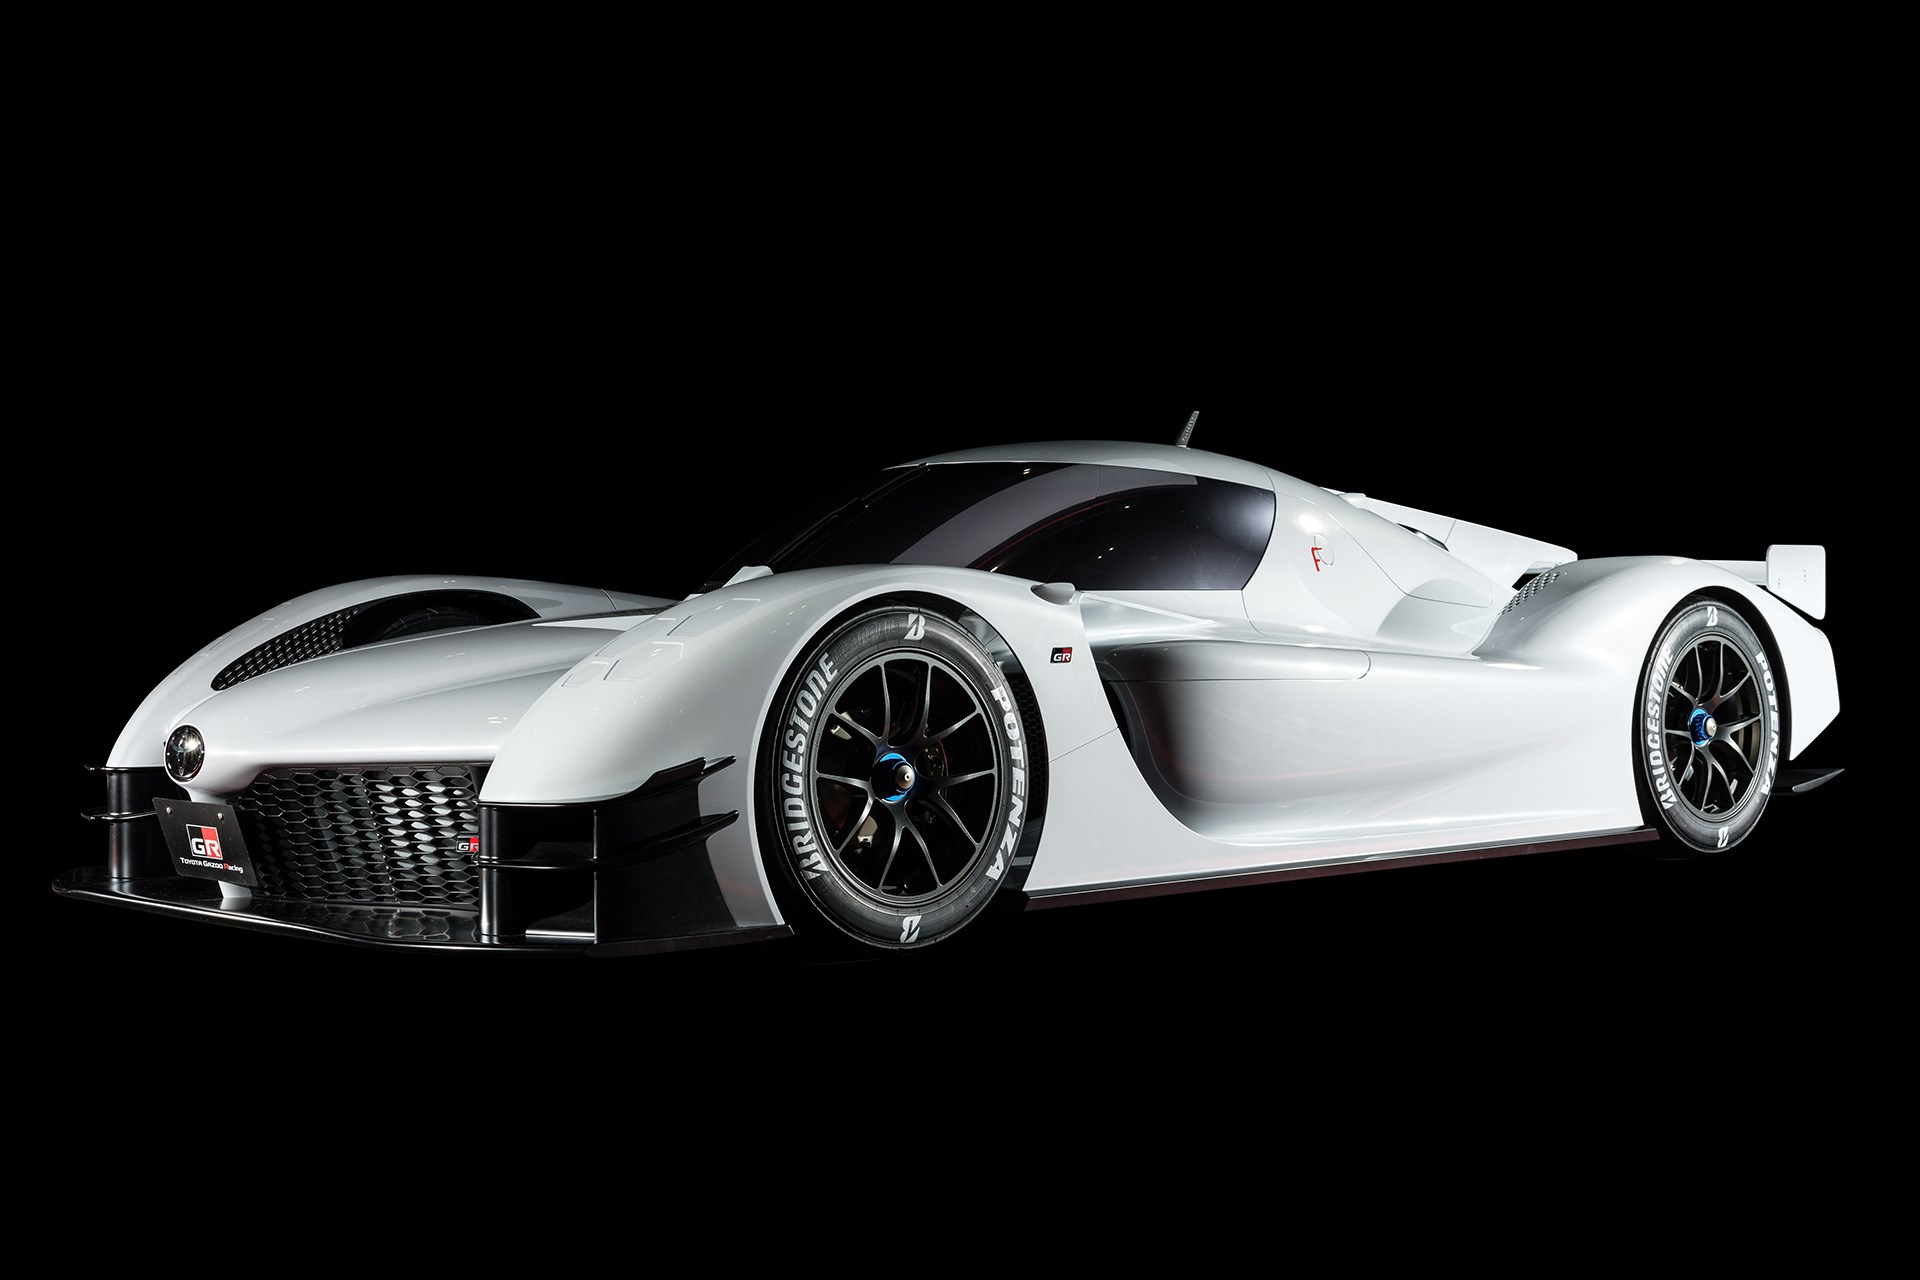 Toyota Gr Super Sport Lmp1 Looks With Hybrid Power